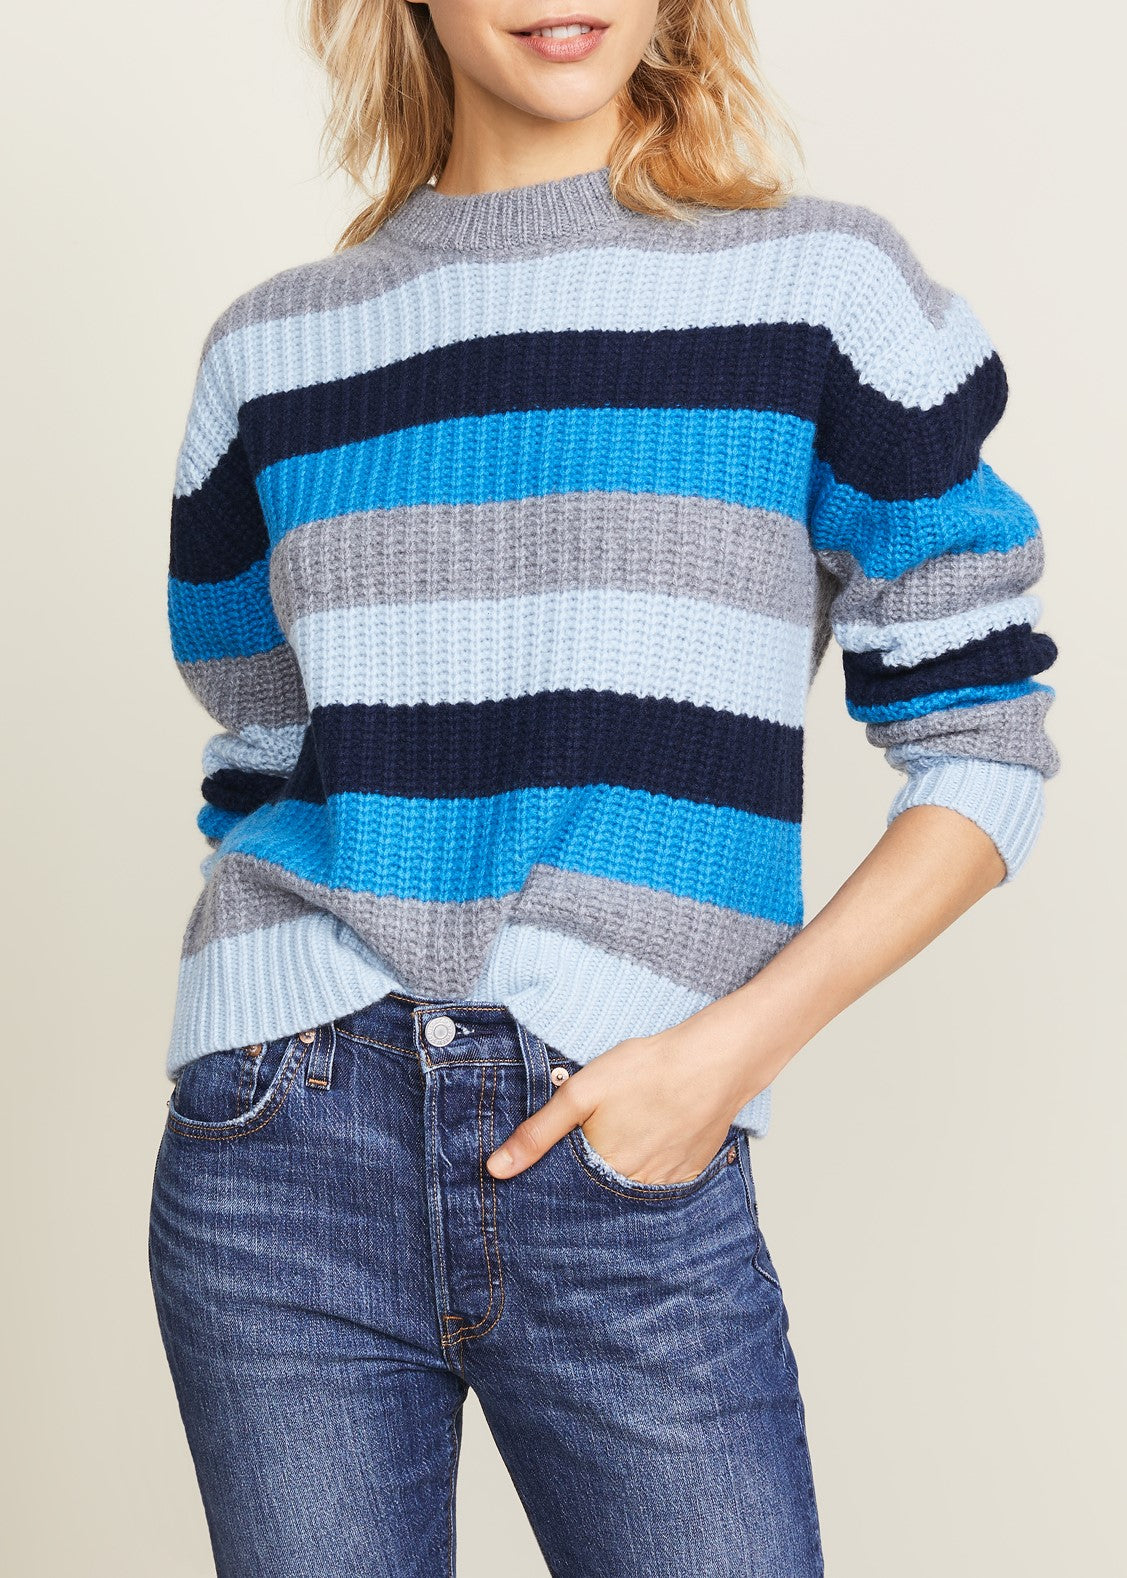 Kule Denton sweater in blue